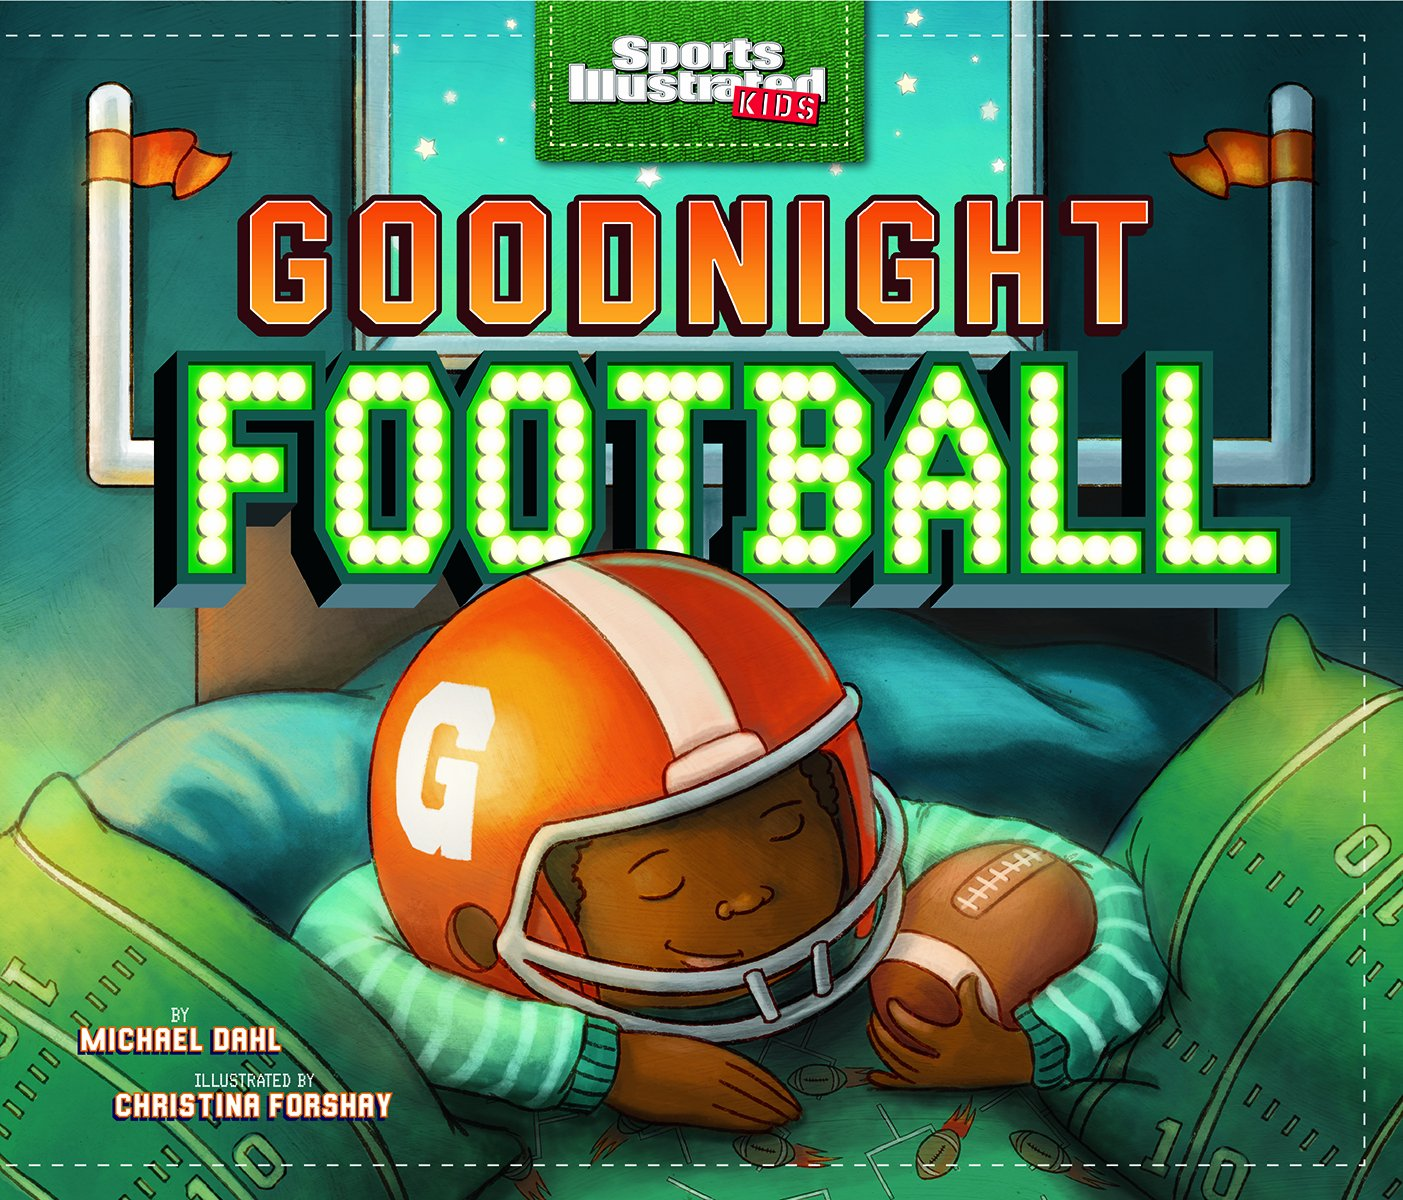 https://www.goodreads.com/book/show/20538995-goodnight-football?ac=1